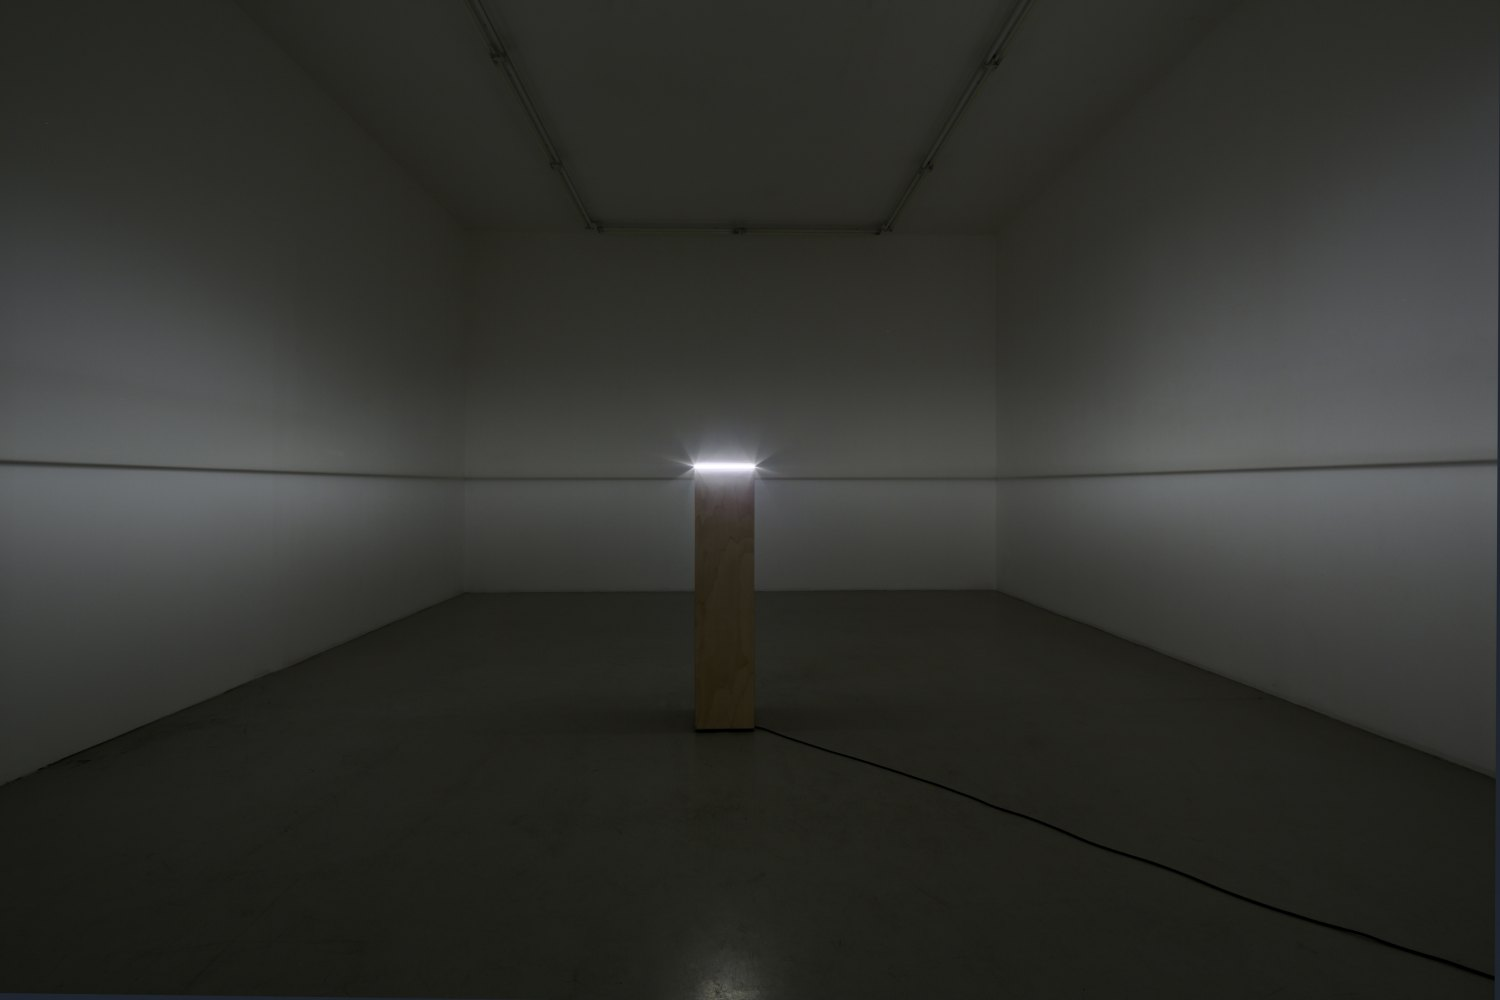 Kitty Kraus Untitled (Light Box), 2012 Painted plywood, painted glass, 250W light bulb, cable, 129 × 36 × 29 cm